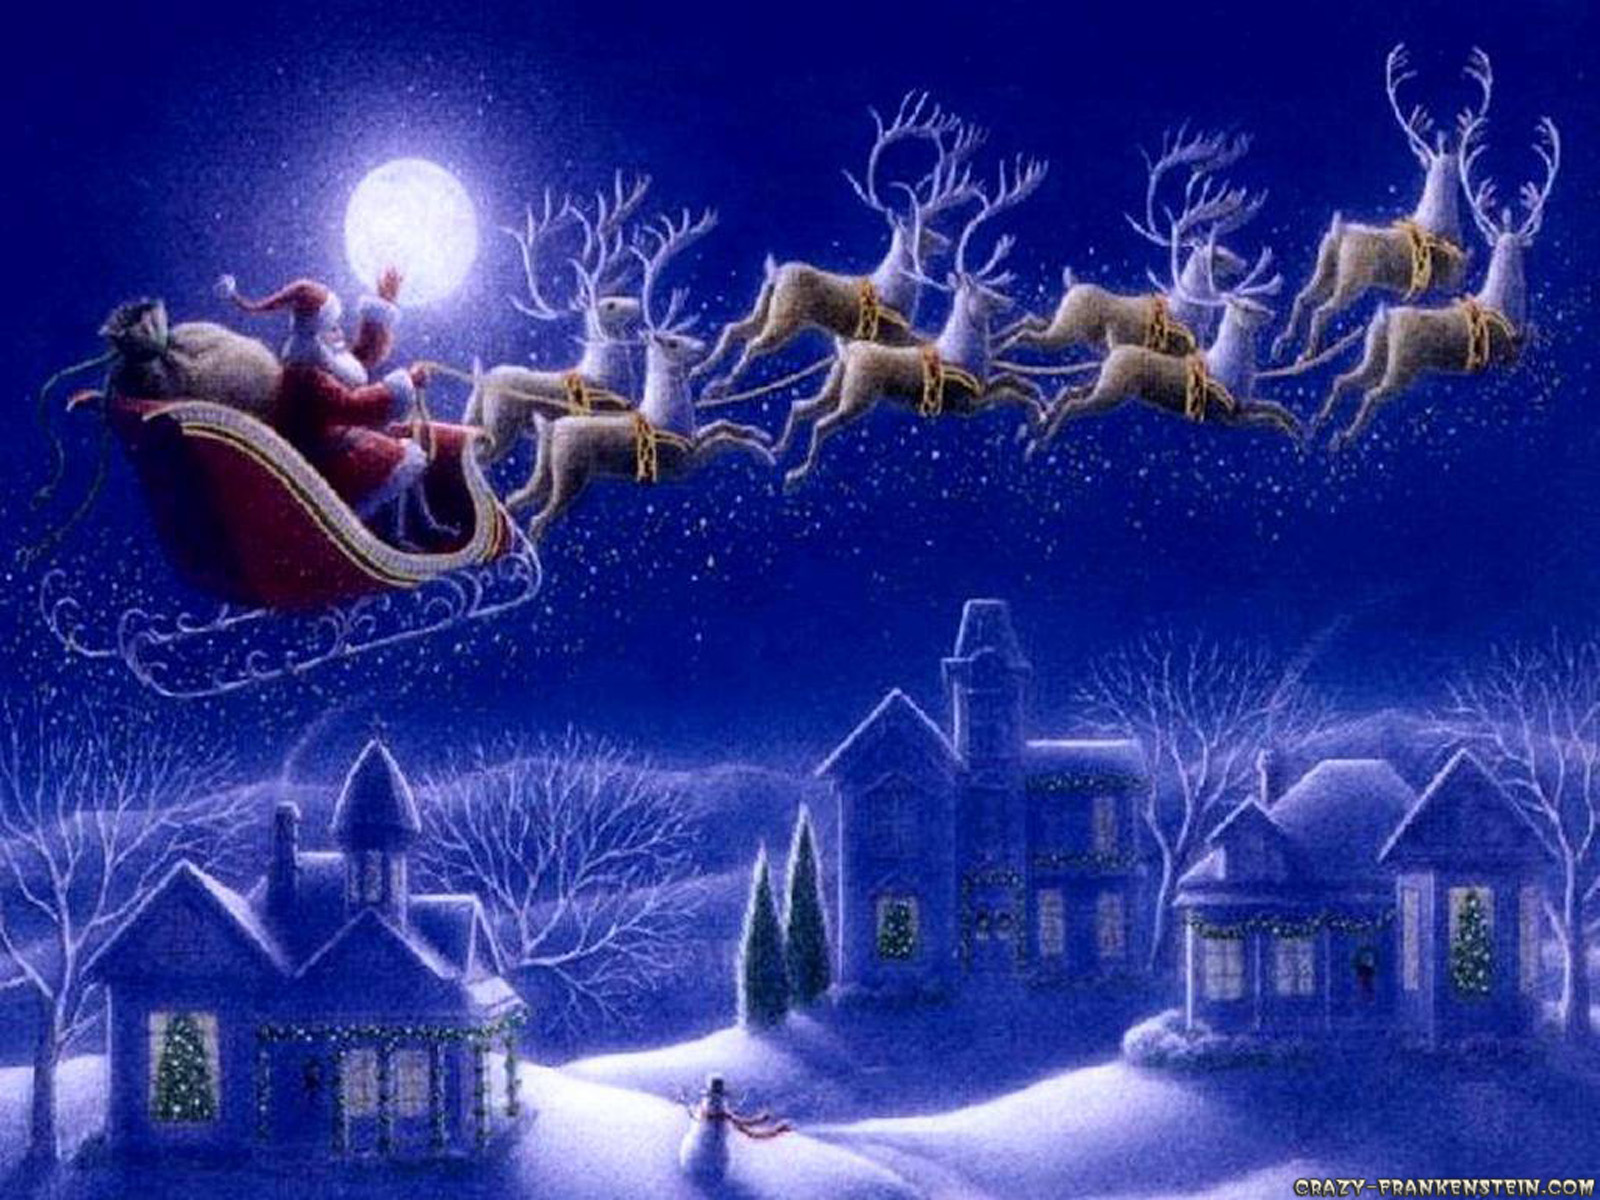 Merry Christmas Wallpapers HD| HD Wallpapers ,Backgrounds ,Photos ,Pictures, Image ,PC